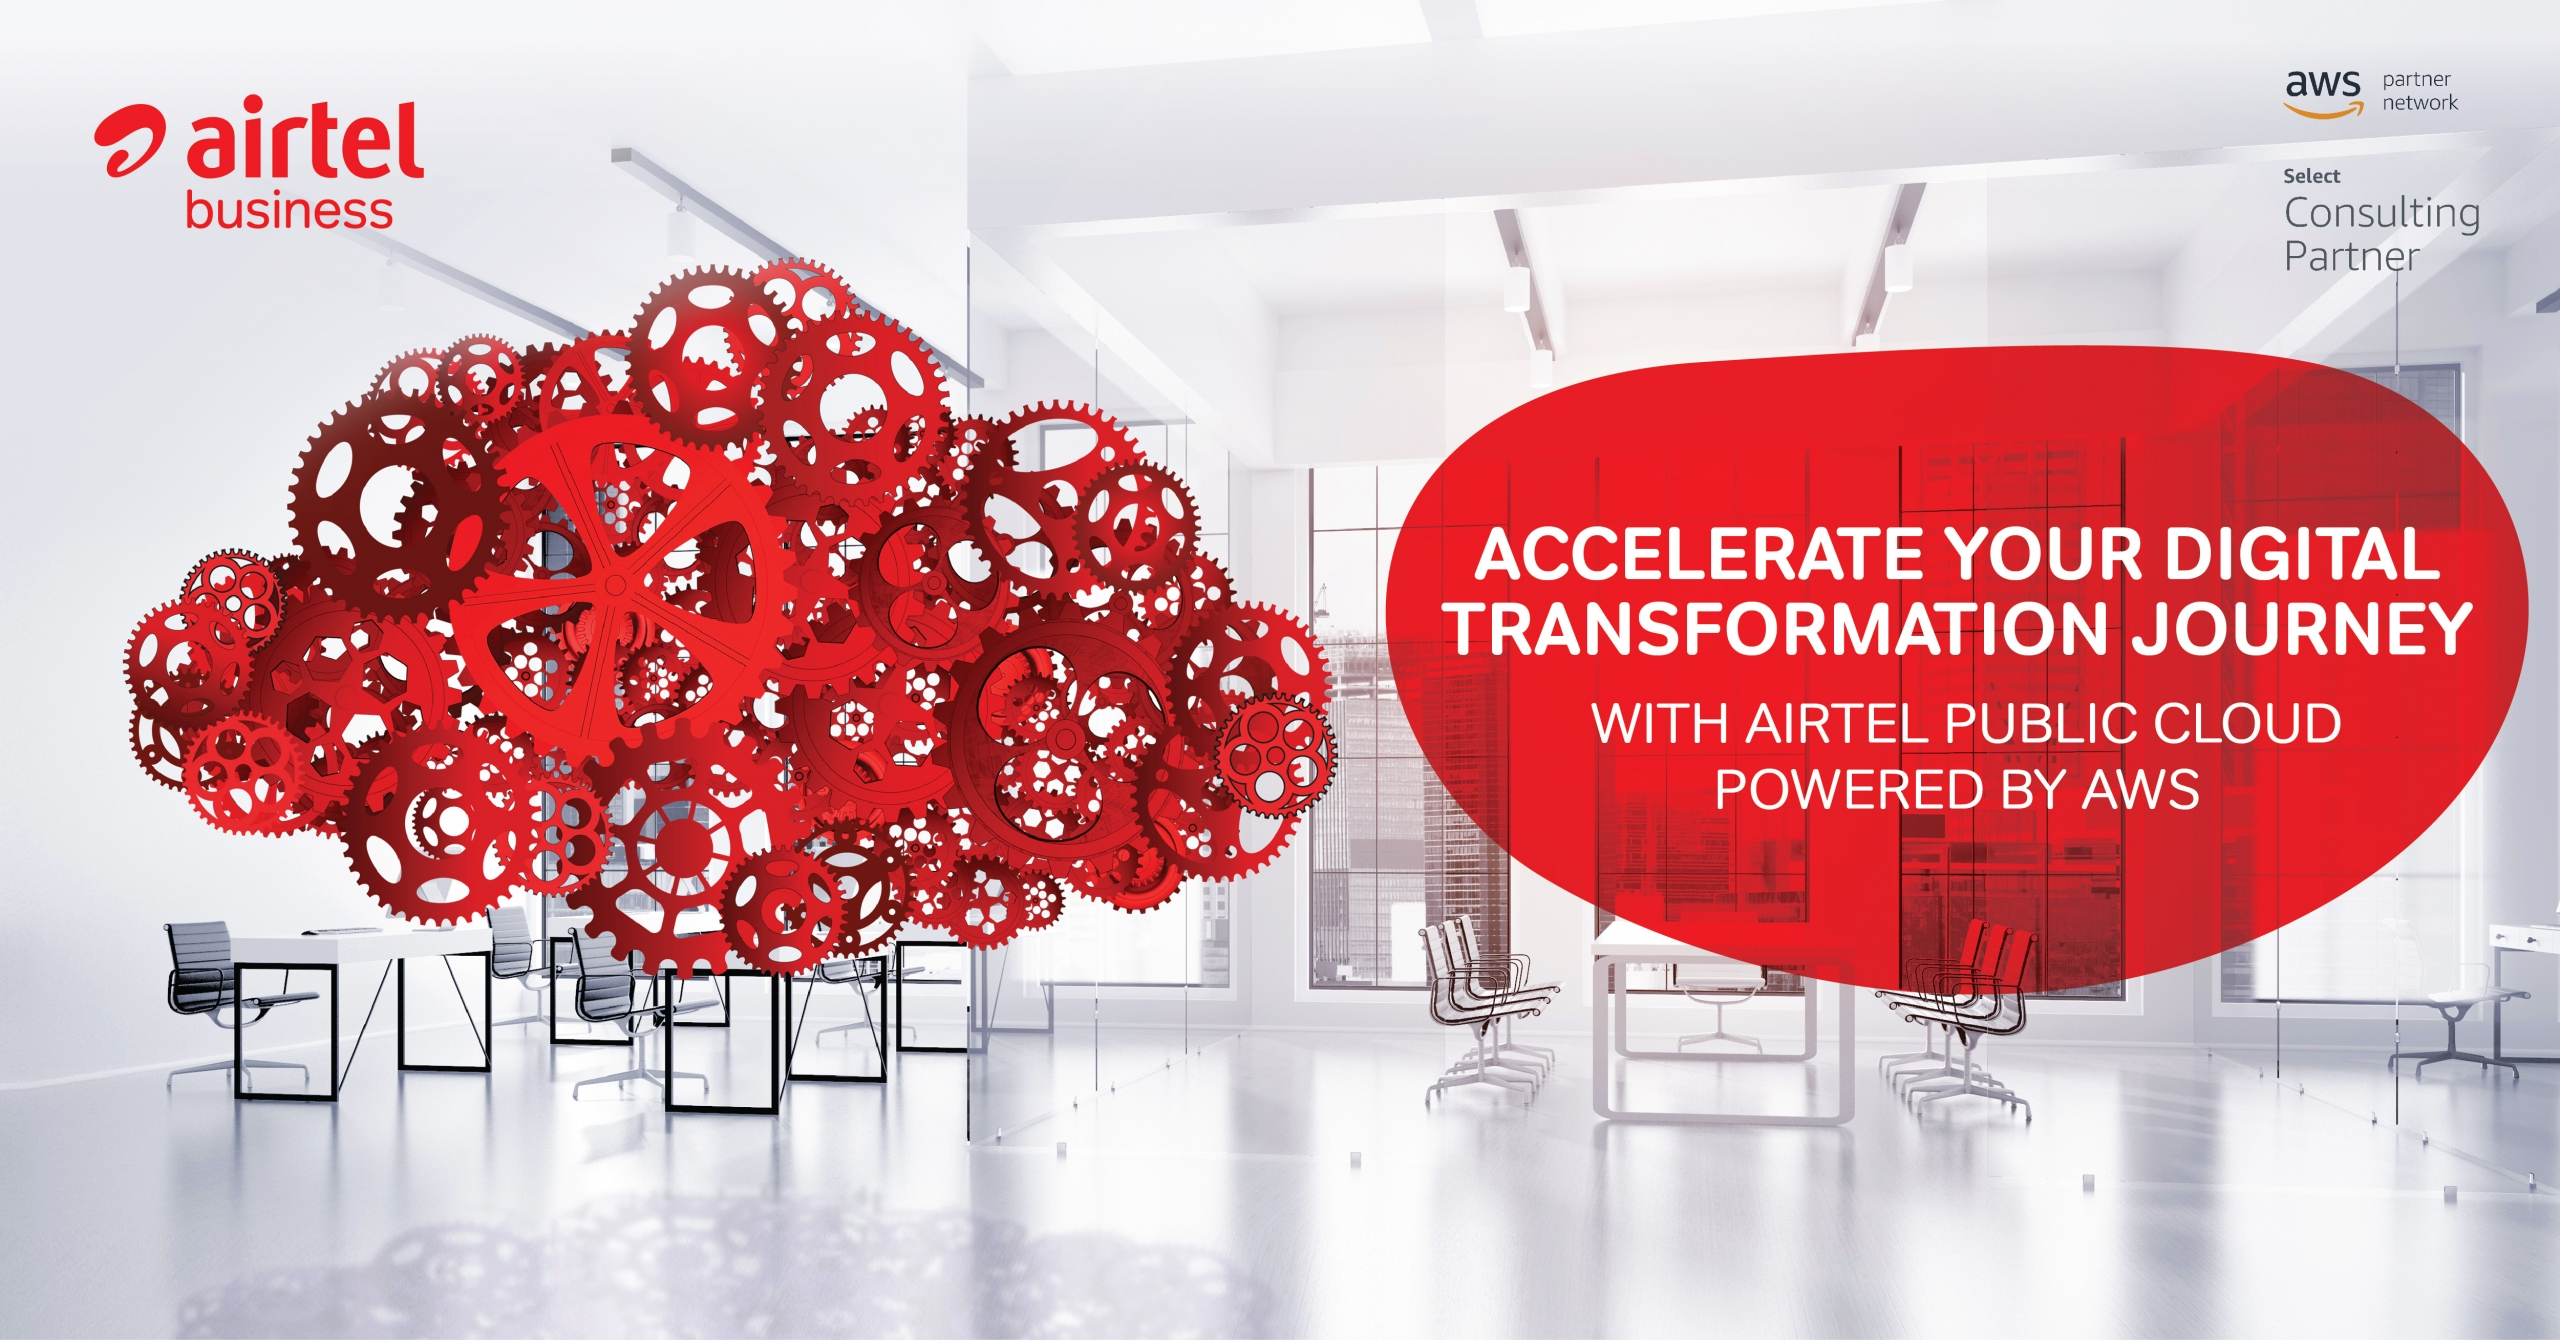 AIRTEL AND AWS JOIN HANDS TO ACCELERATE DIGITAL TRANSFORMATION OF BUSINESSES IN INDIA